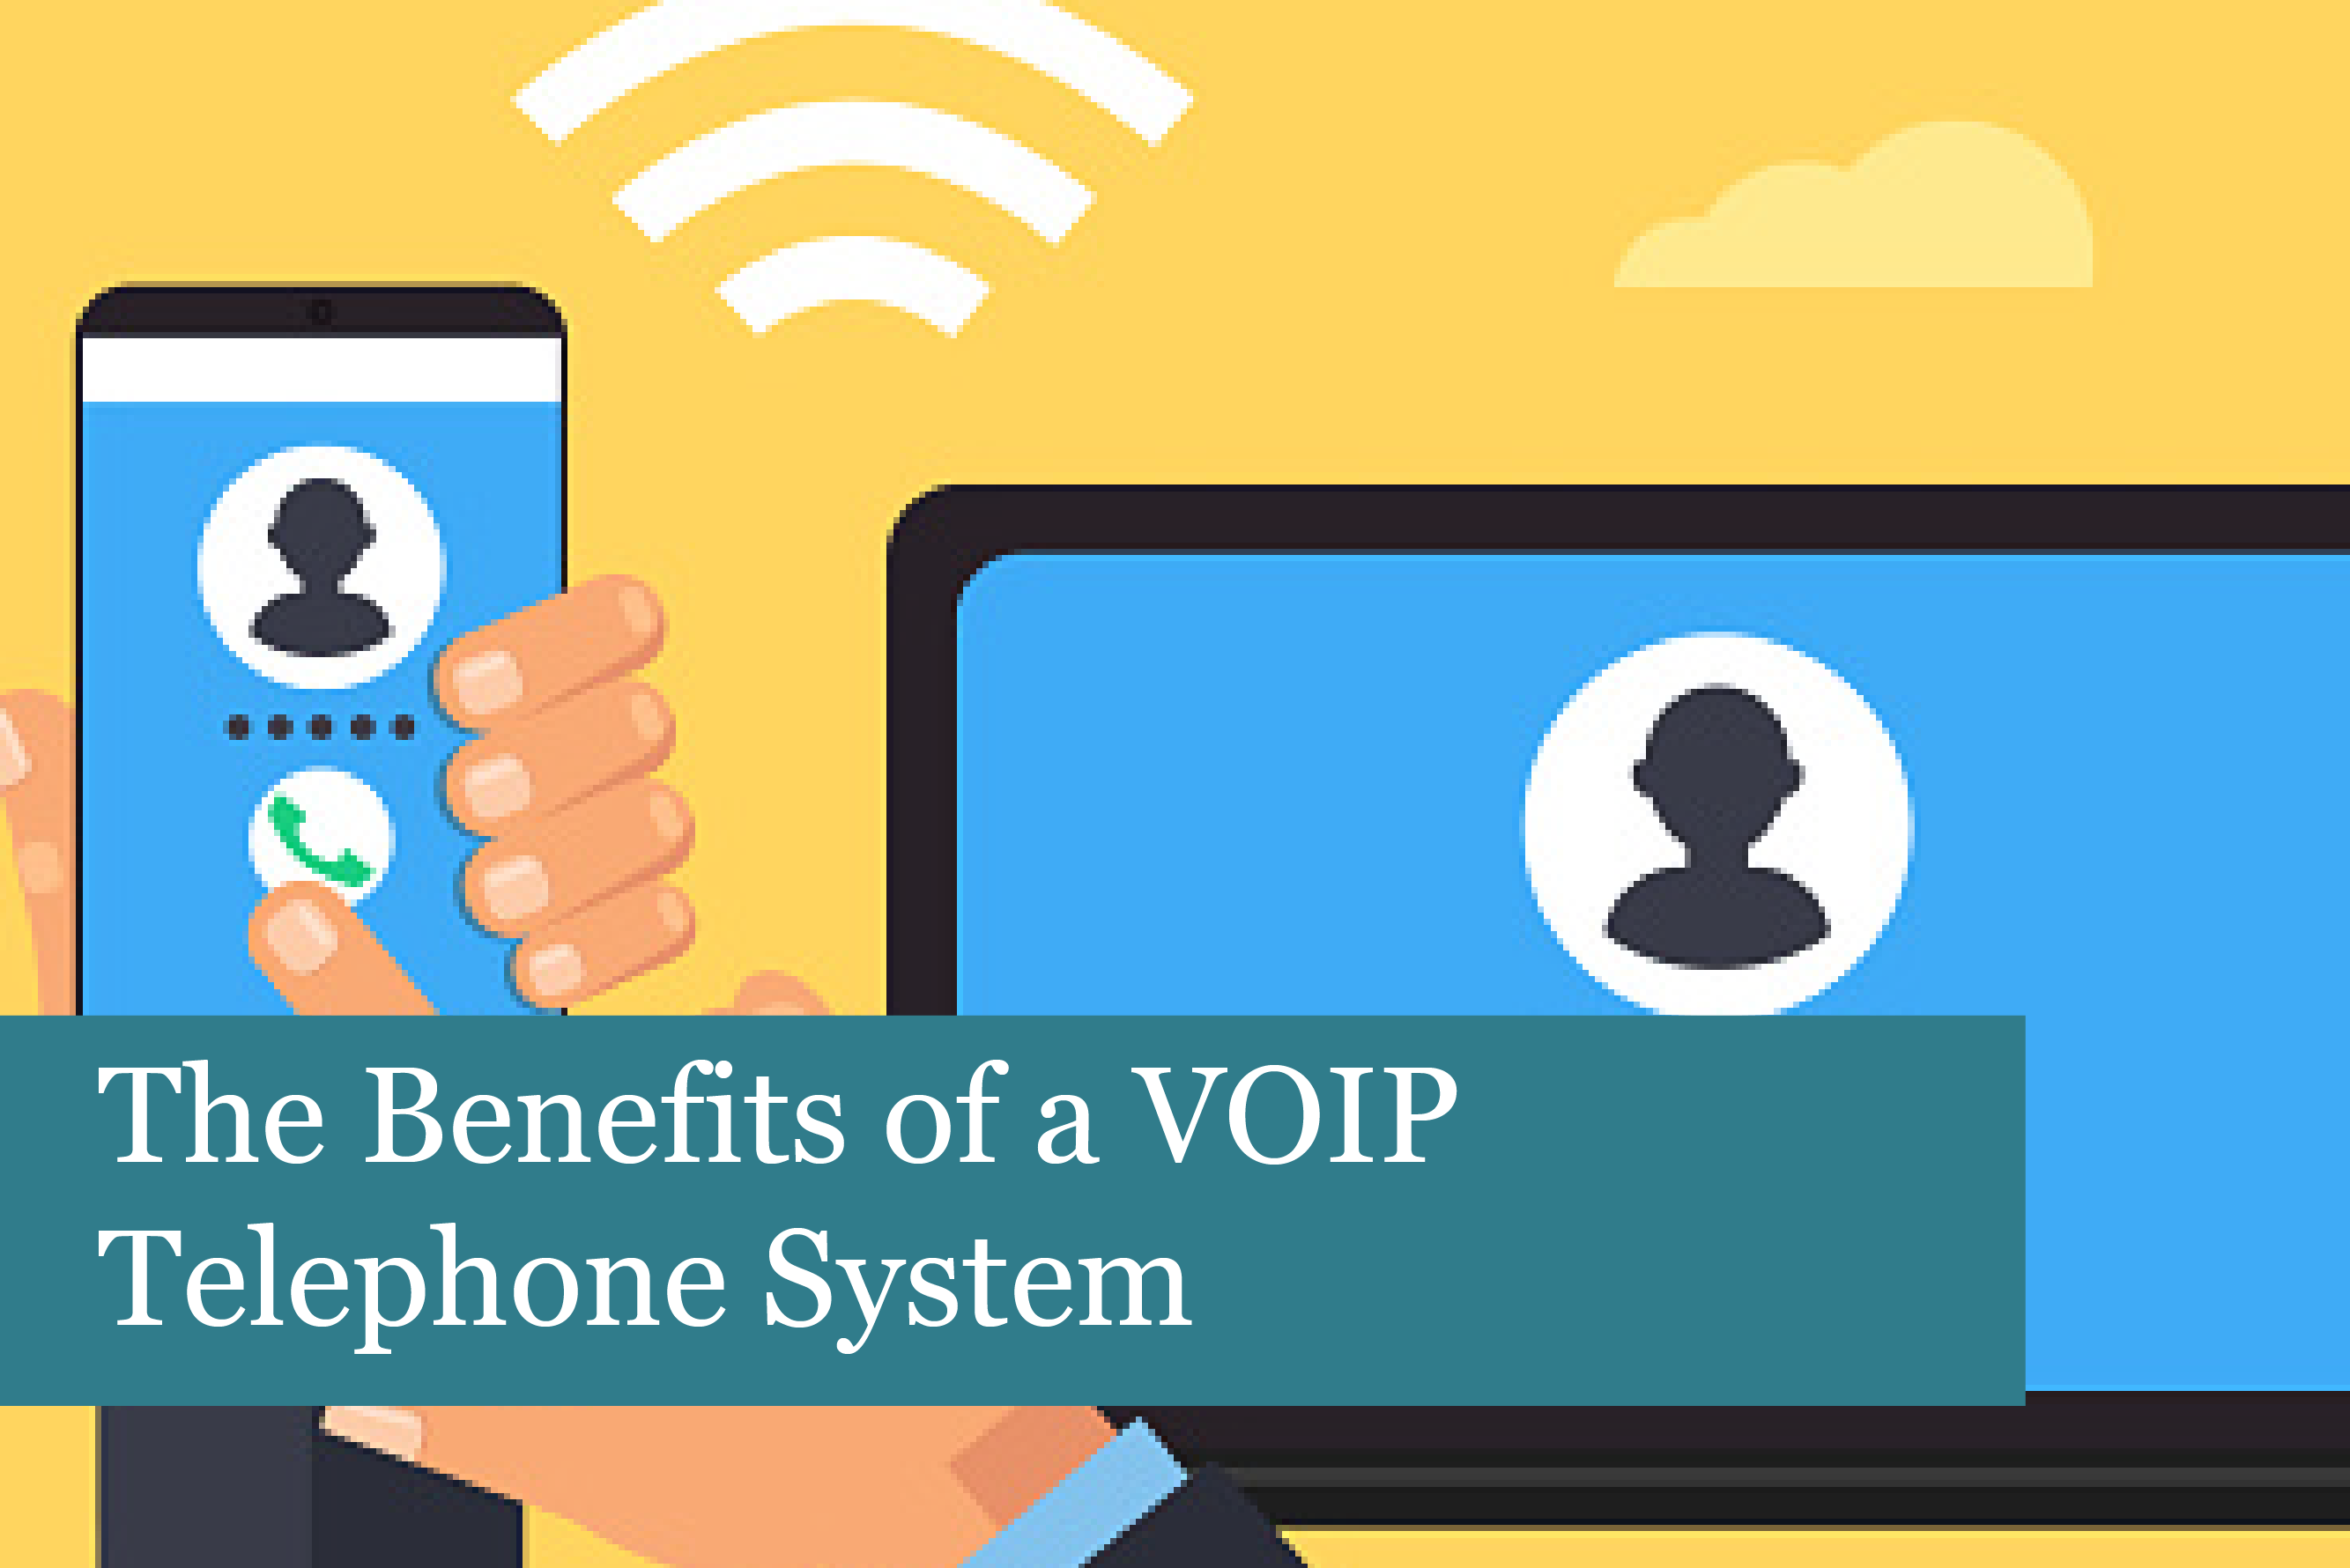 The Benefits of a VOIP Telephone System